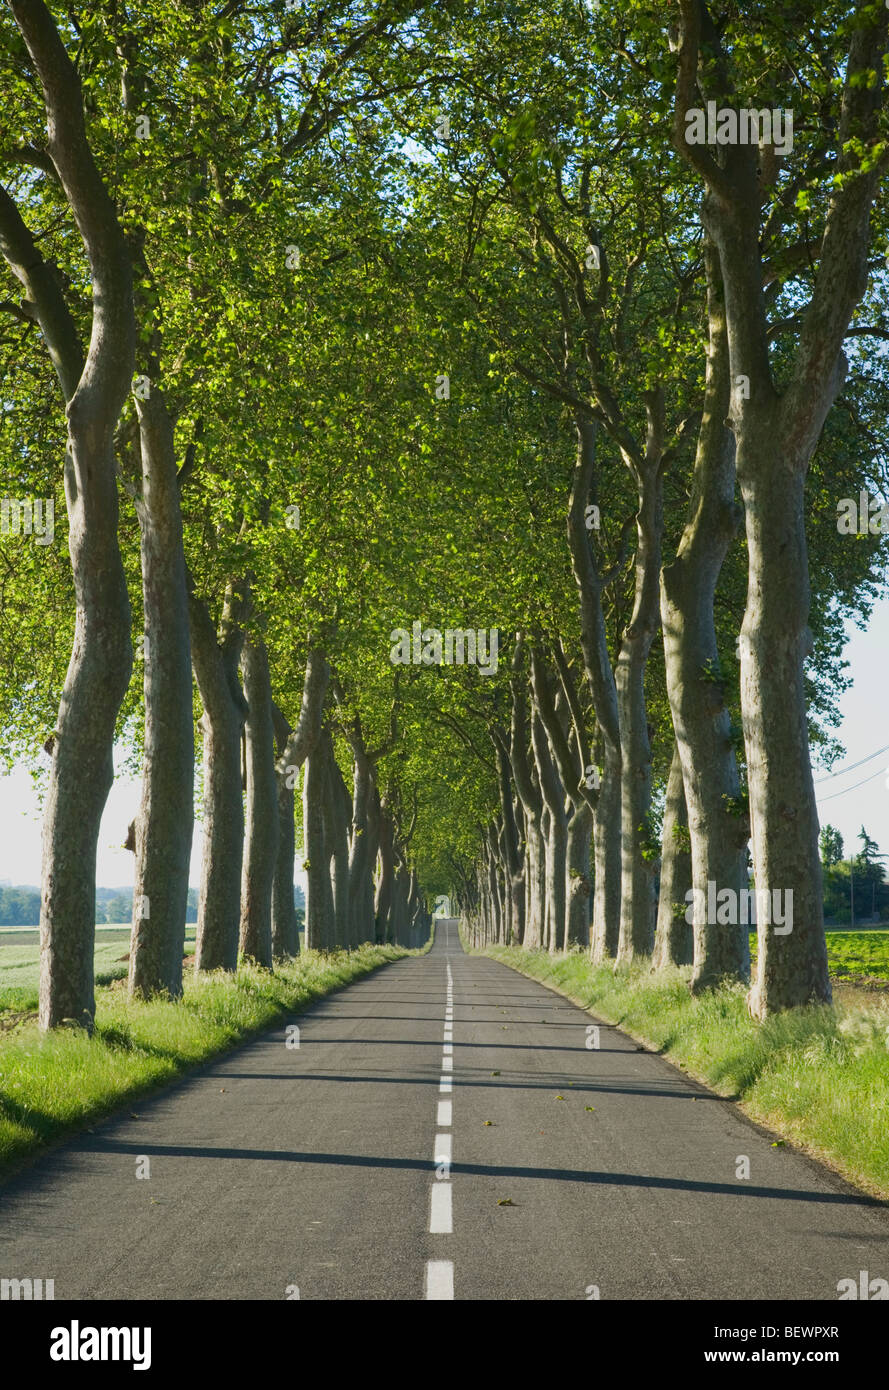 Avenue of trees alongside a road in rural France Stock Photo ... for Straight Road With Trees  55jwn